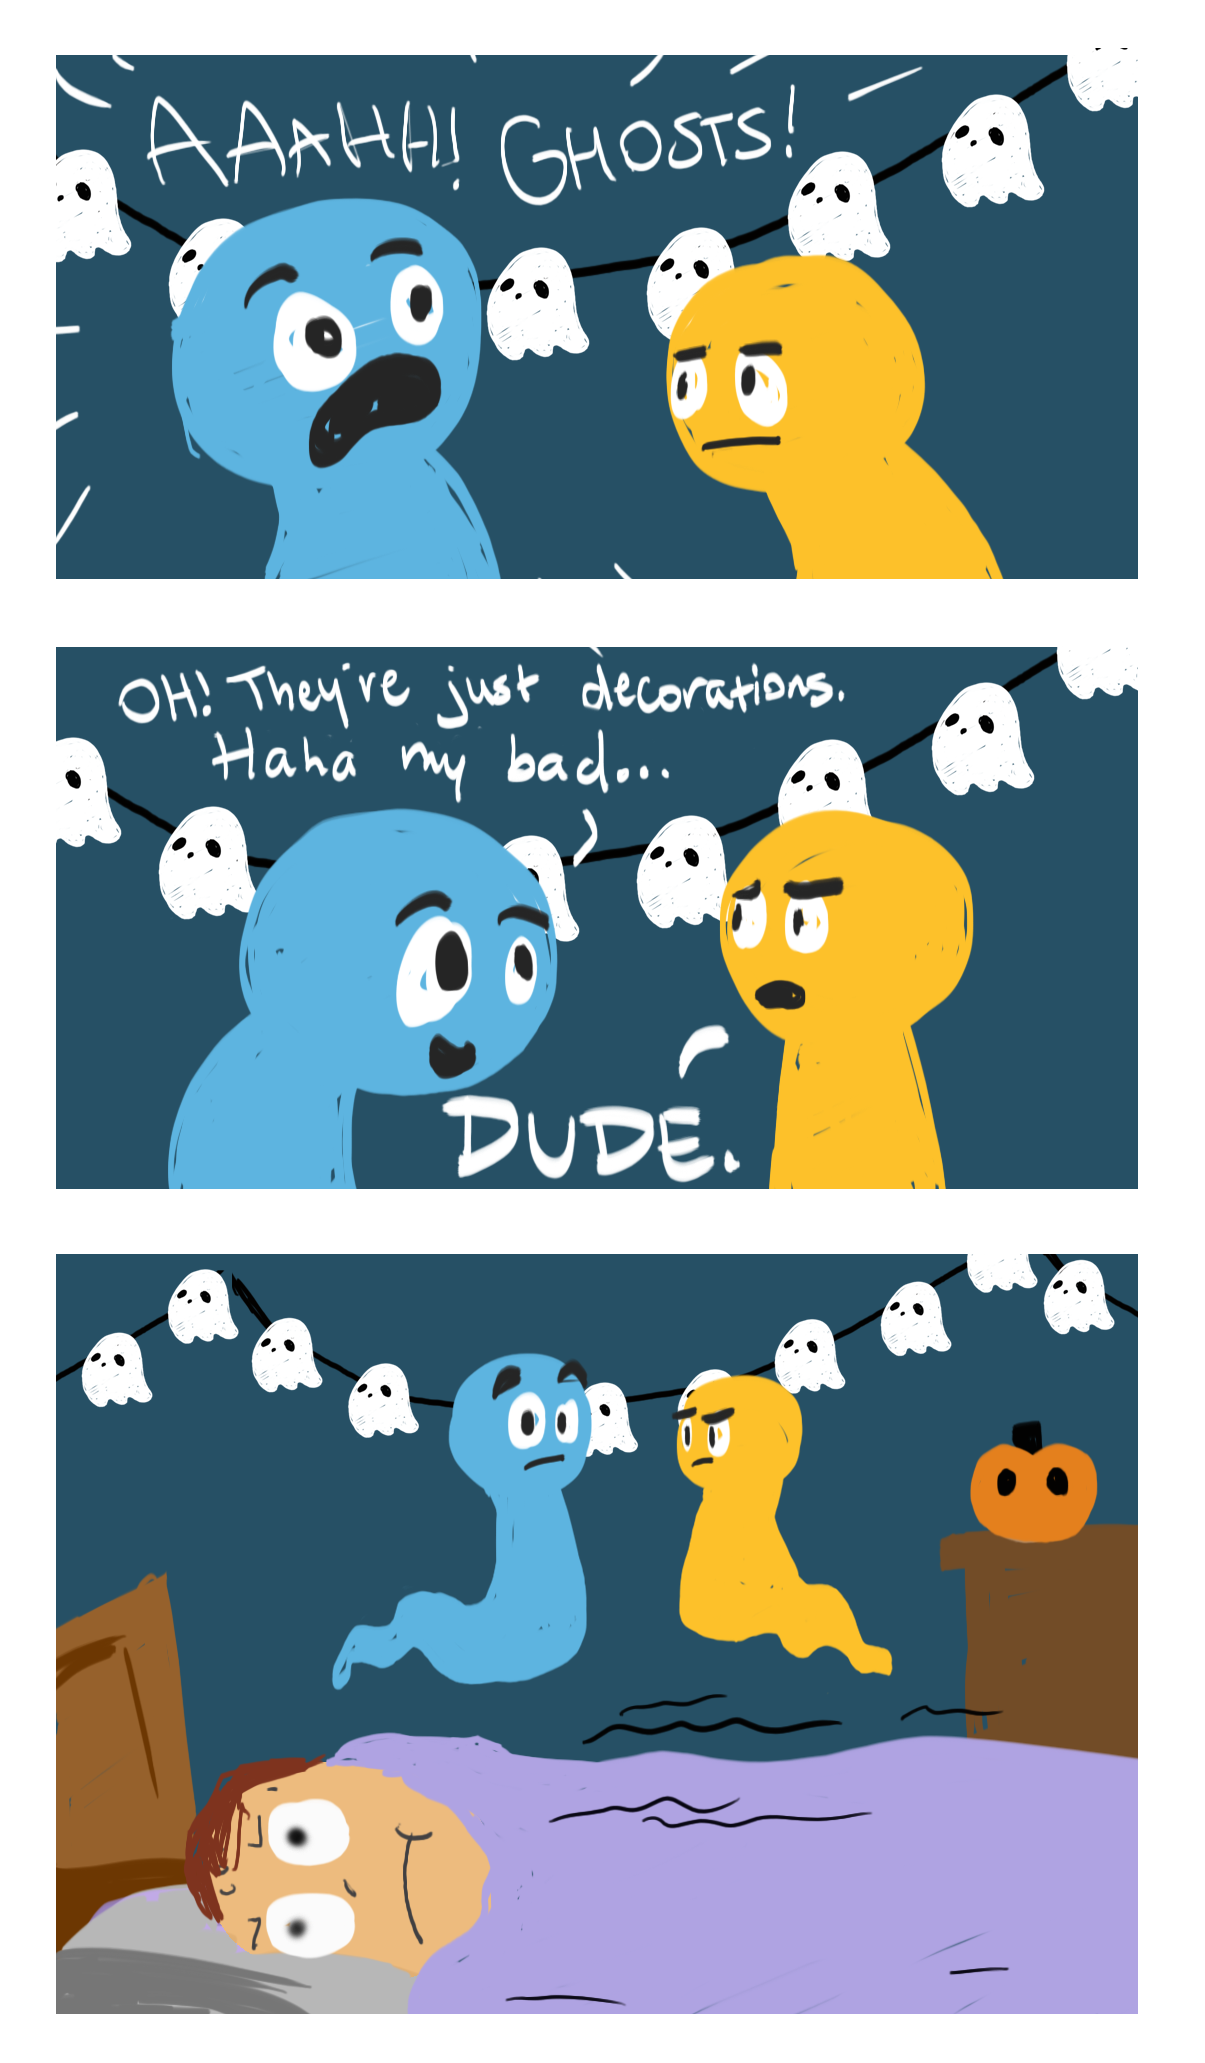 Ahhh! Ghosts!